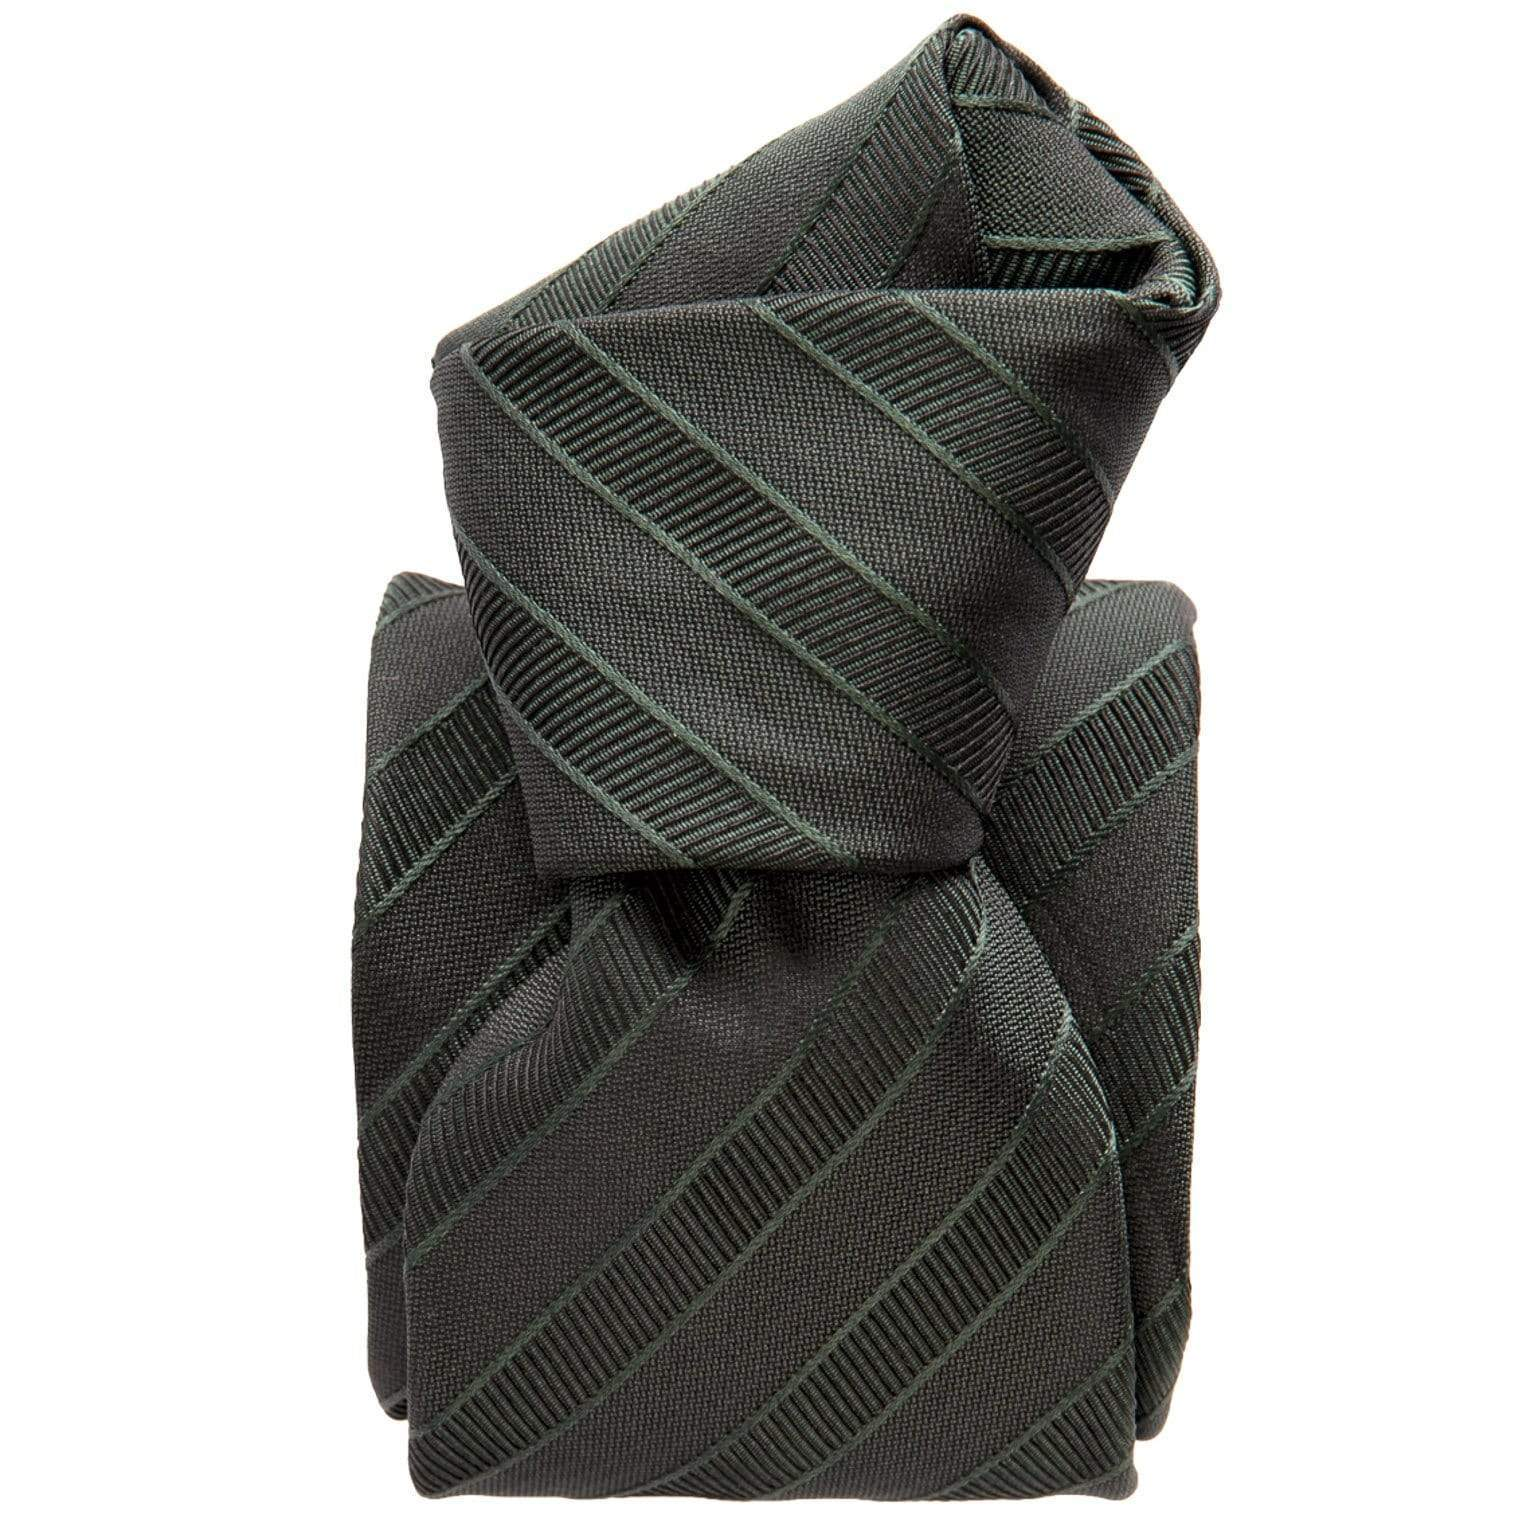 Forest Green Striped Tie - 3 Fold - Made in Italy